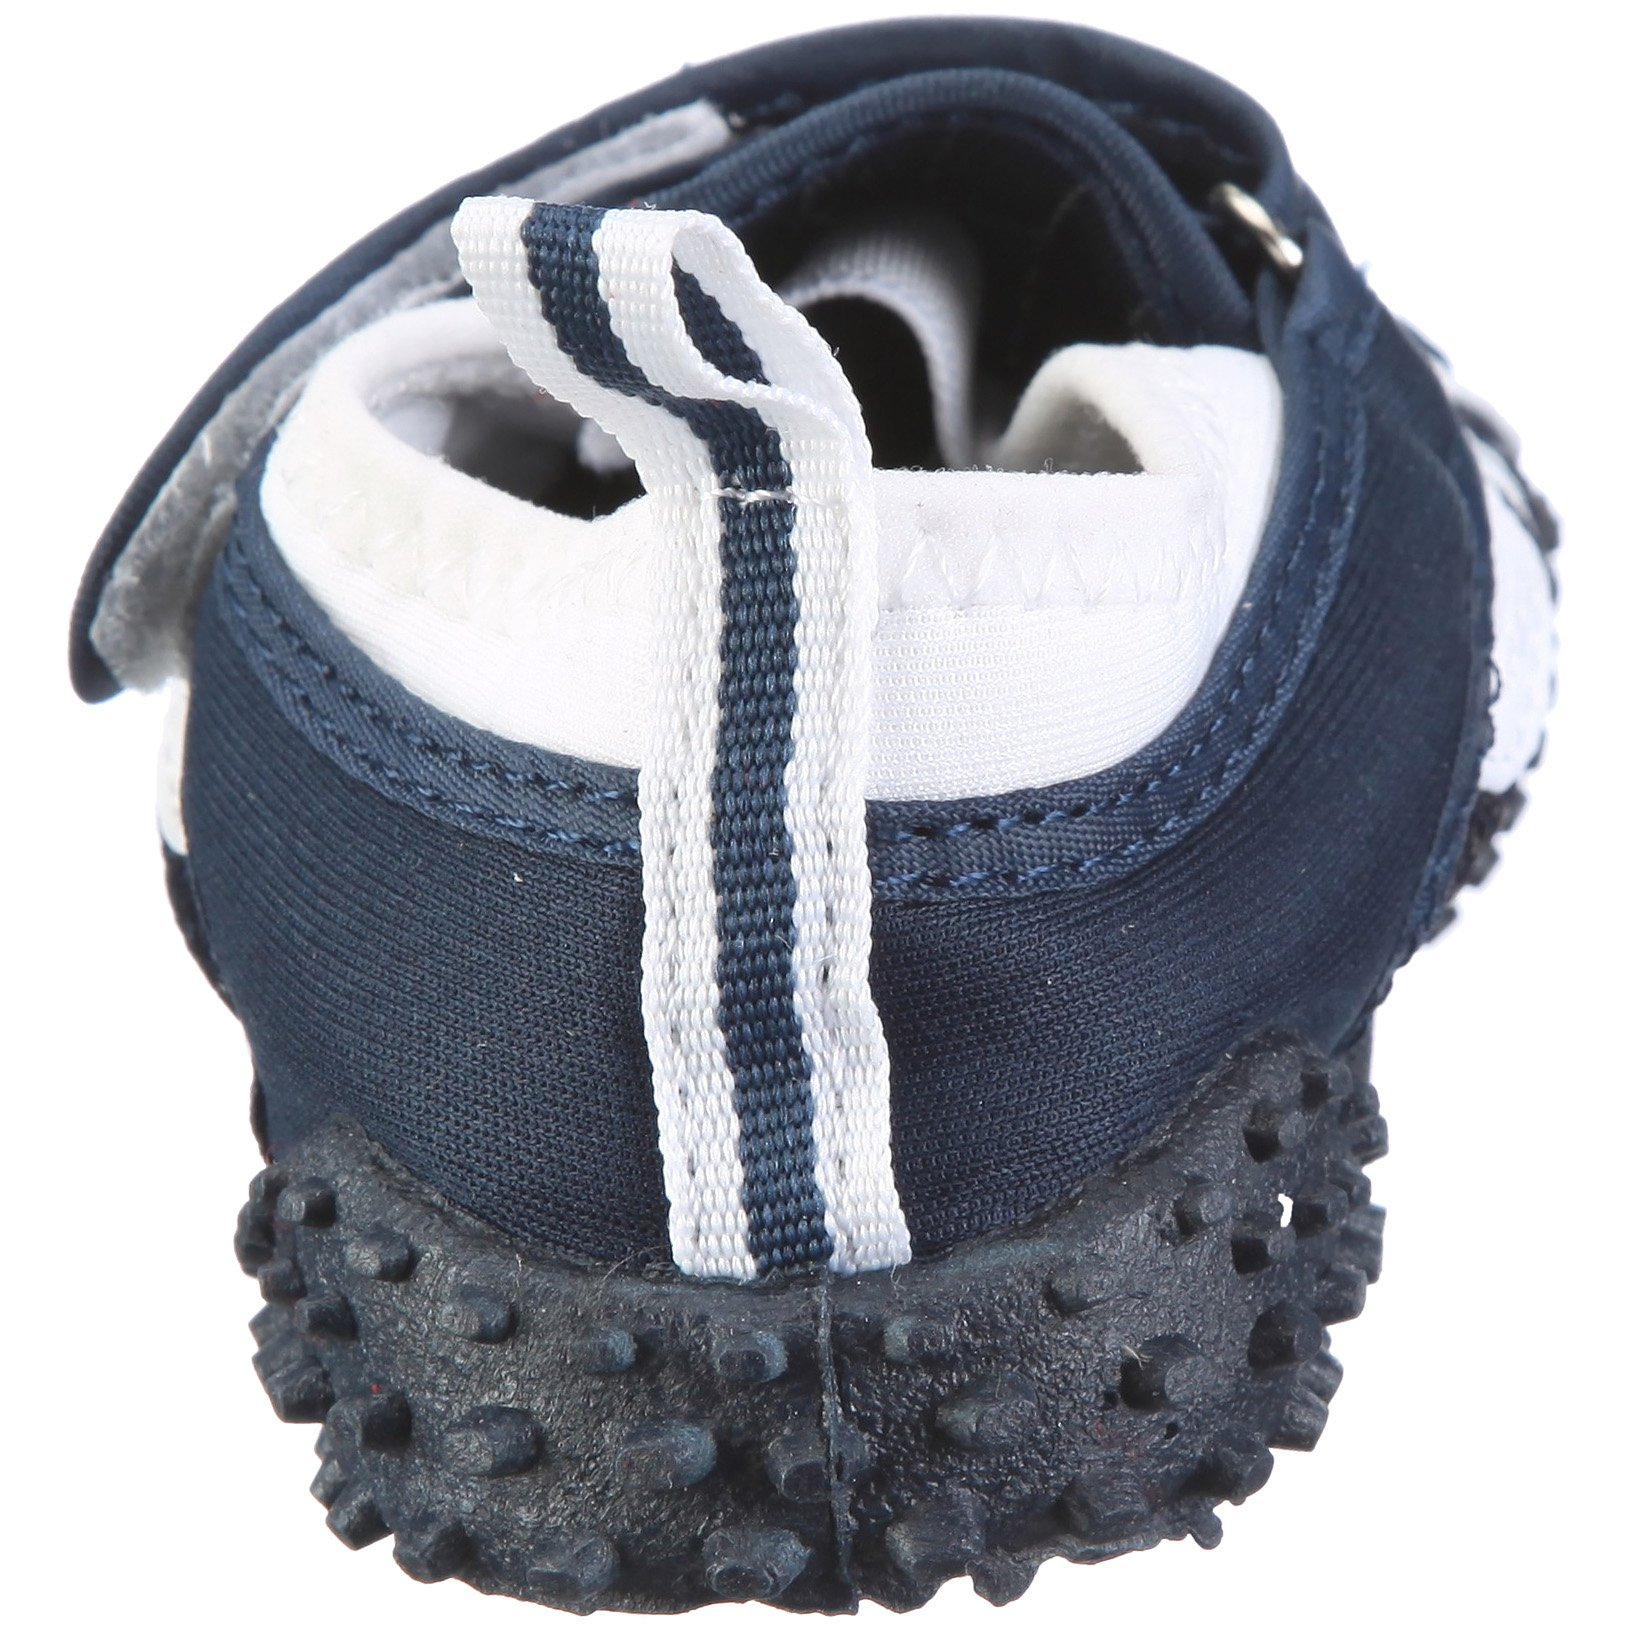 Playshoes Children's Aqua Beach Water Shoes (8.5 M US Toddler, Navy) by Playshoes (Image #3)